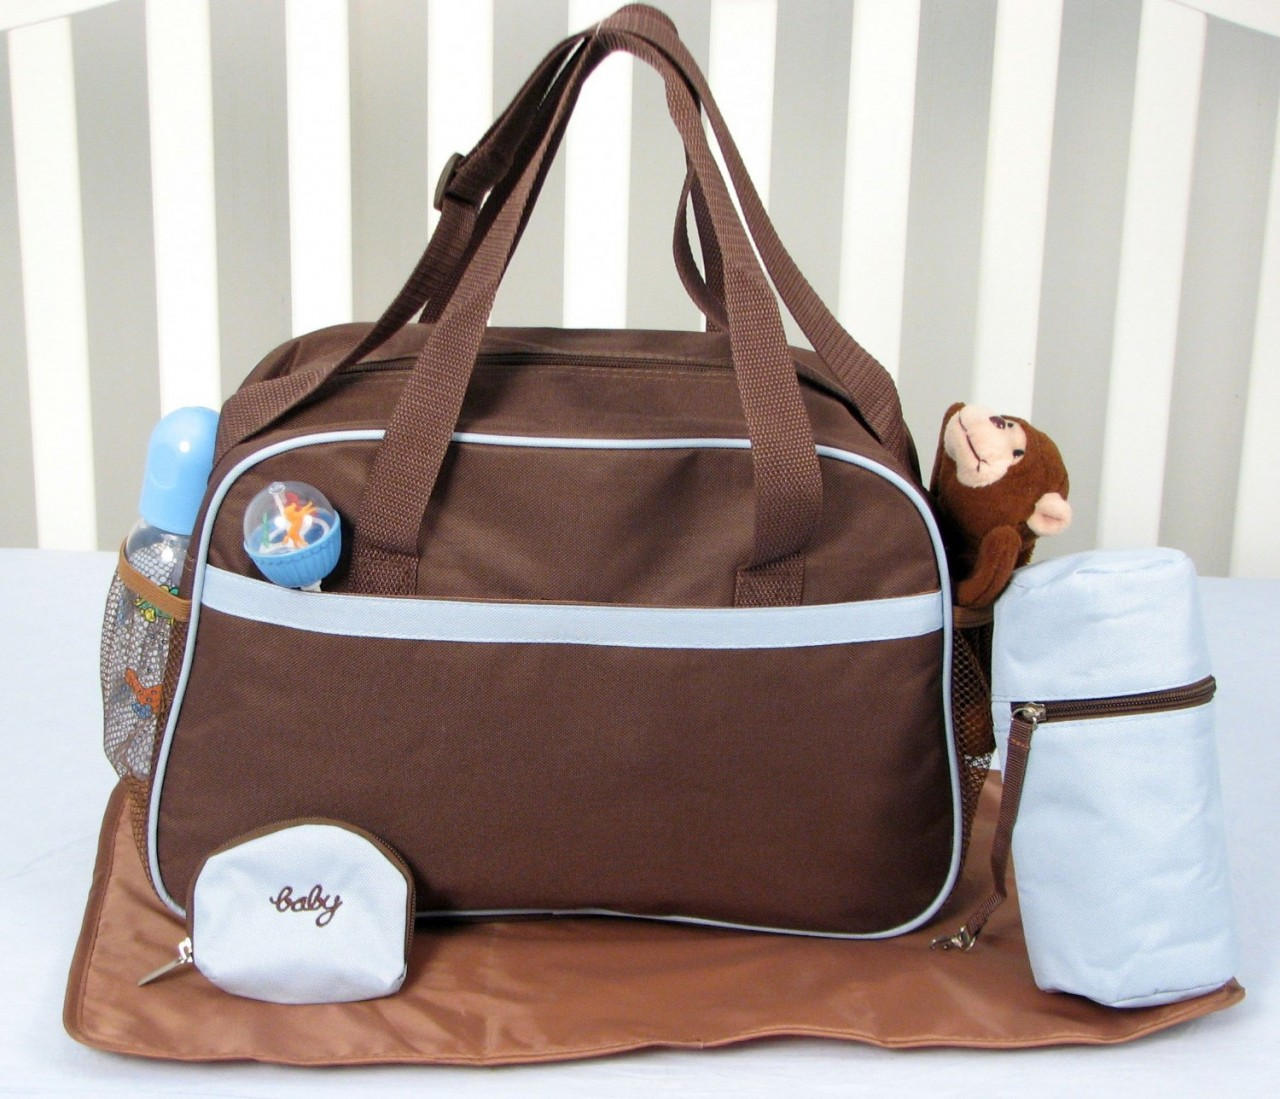 KIT DE BERCO SOHO AVIATOR ADVENTURE BABY 13 PCS INCLUDED DIAPER BAG WITH CHAGING PAD & BOTTLE CASE